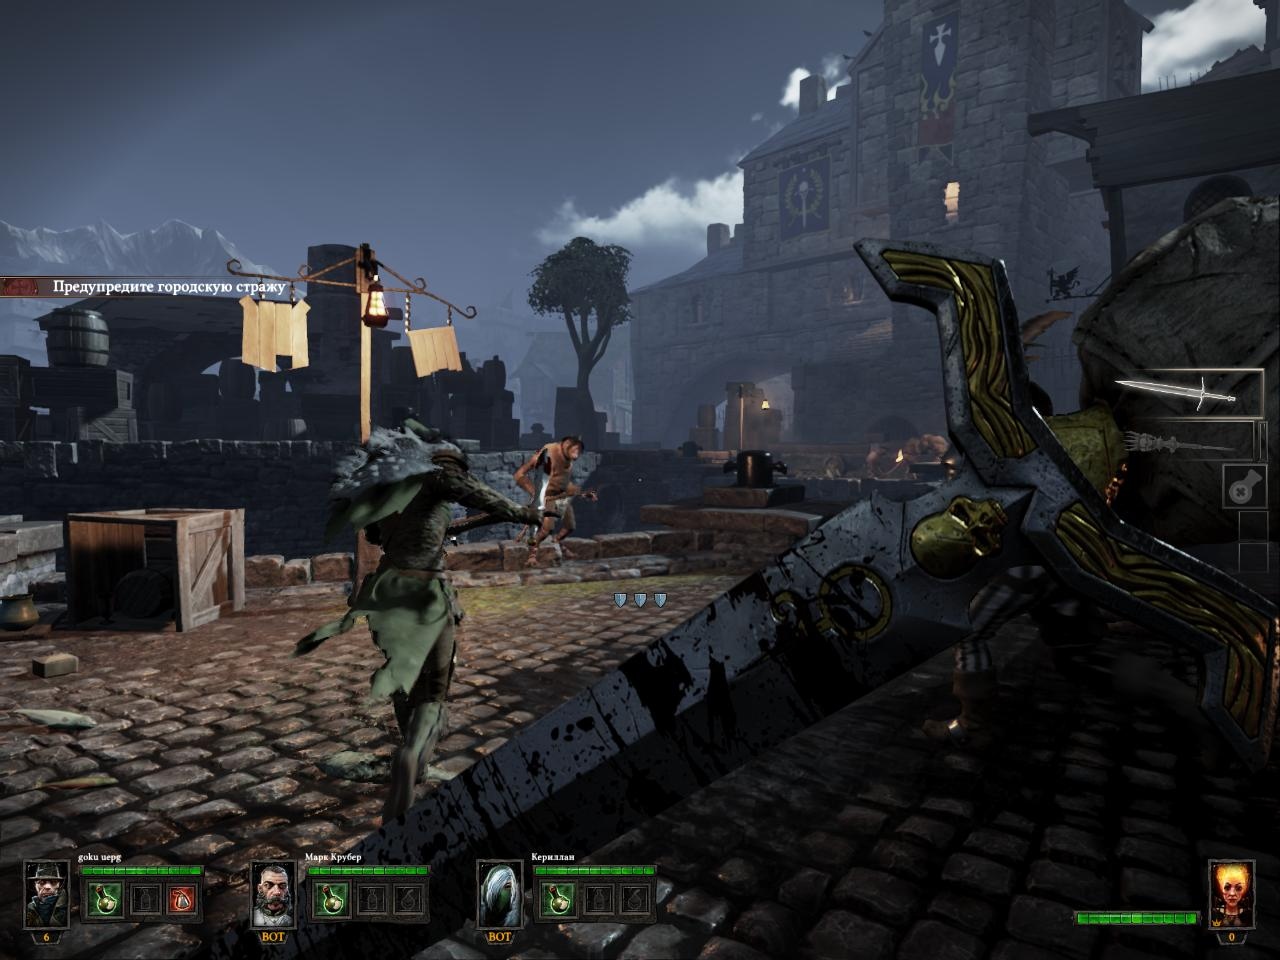 Warhammer: End Times - Vermintide (2015/PC/Repack/Rus|Eng) от SEYTER - Скриншот 2